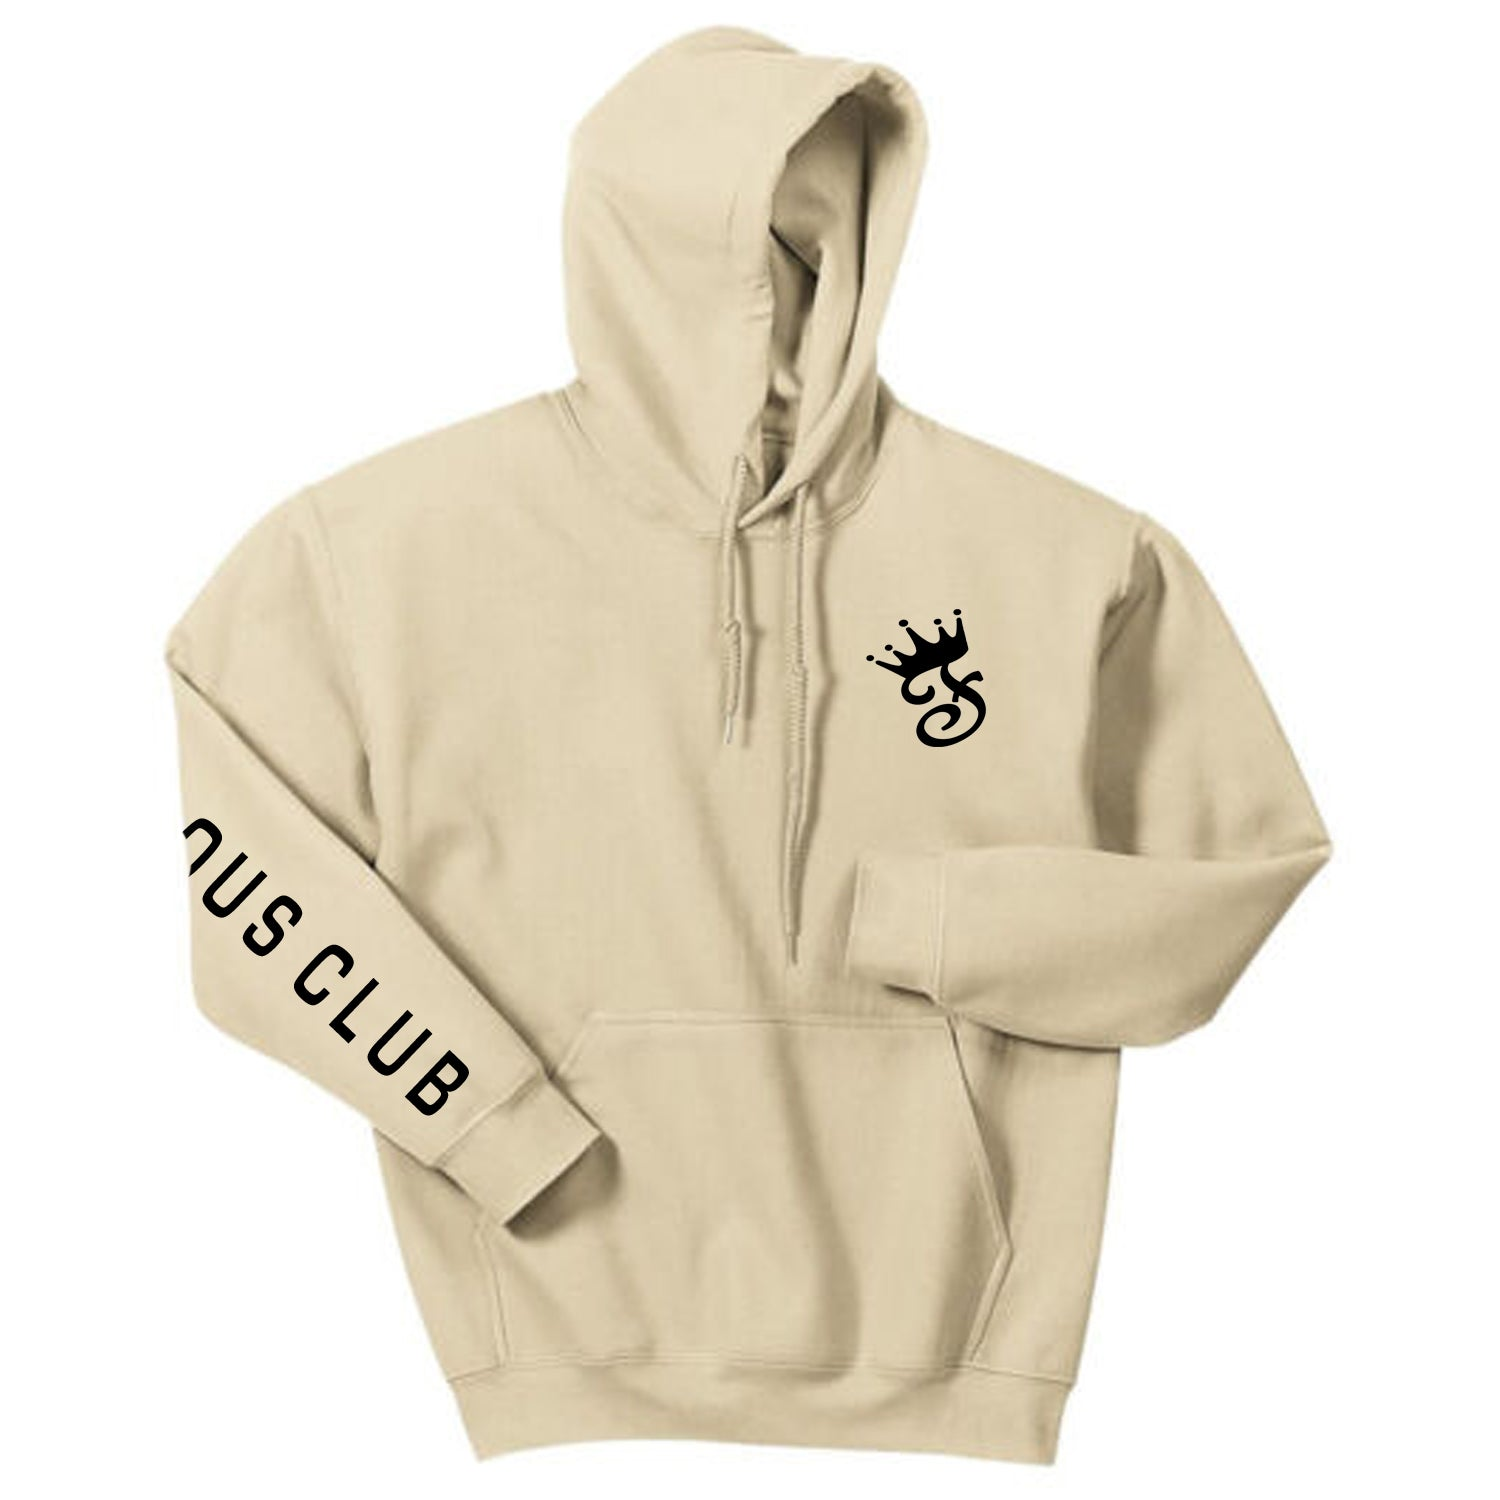 Tan Fame Hoodie - Famous Club Clothing